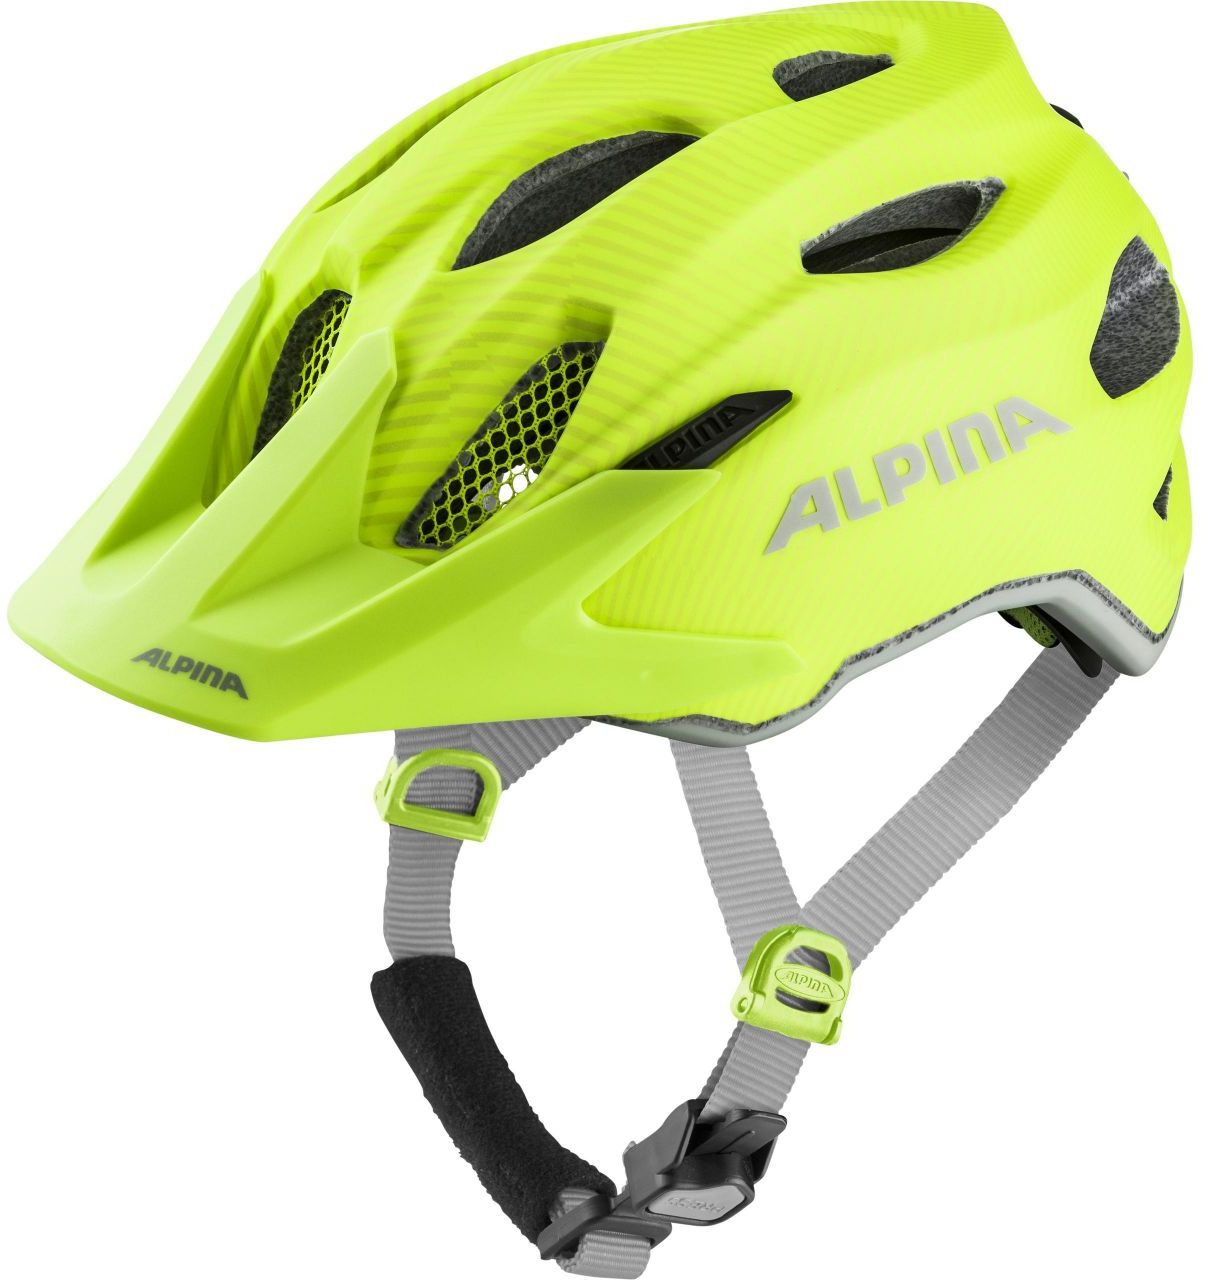 Alpina Carapax Jr. Flash - be visible 51-56